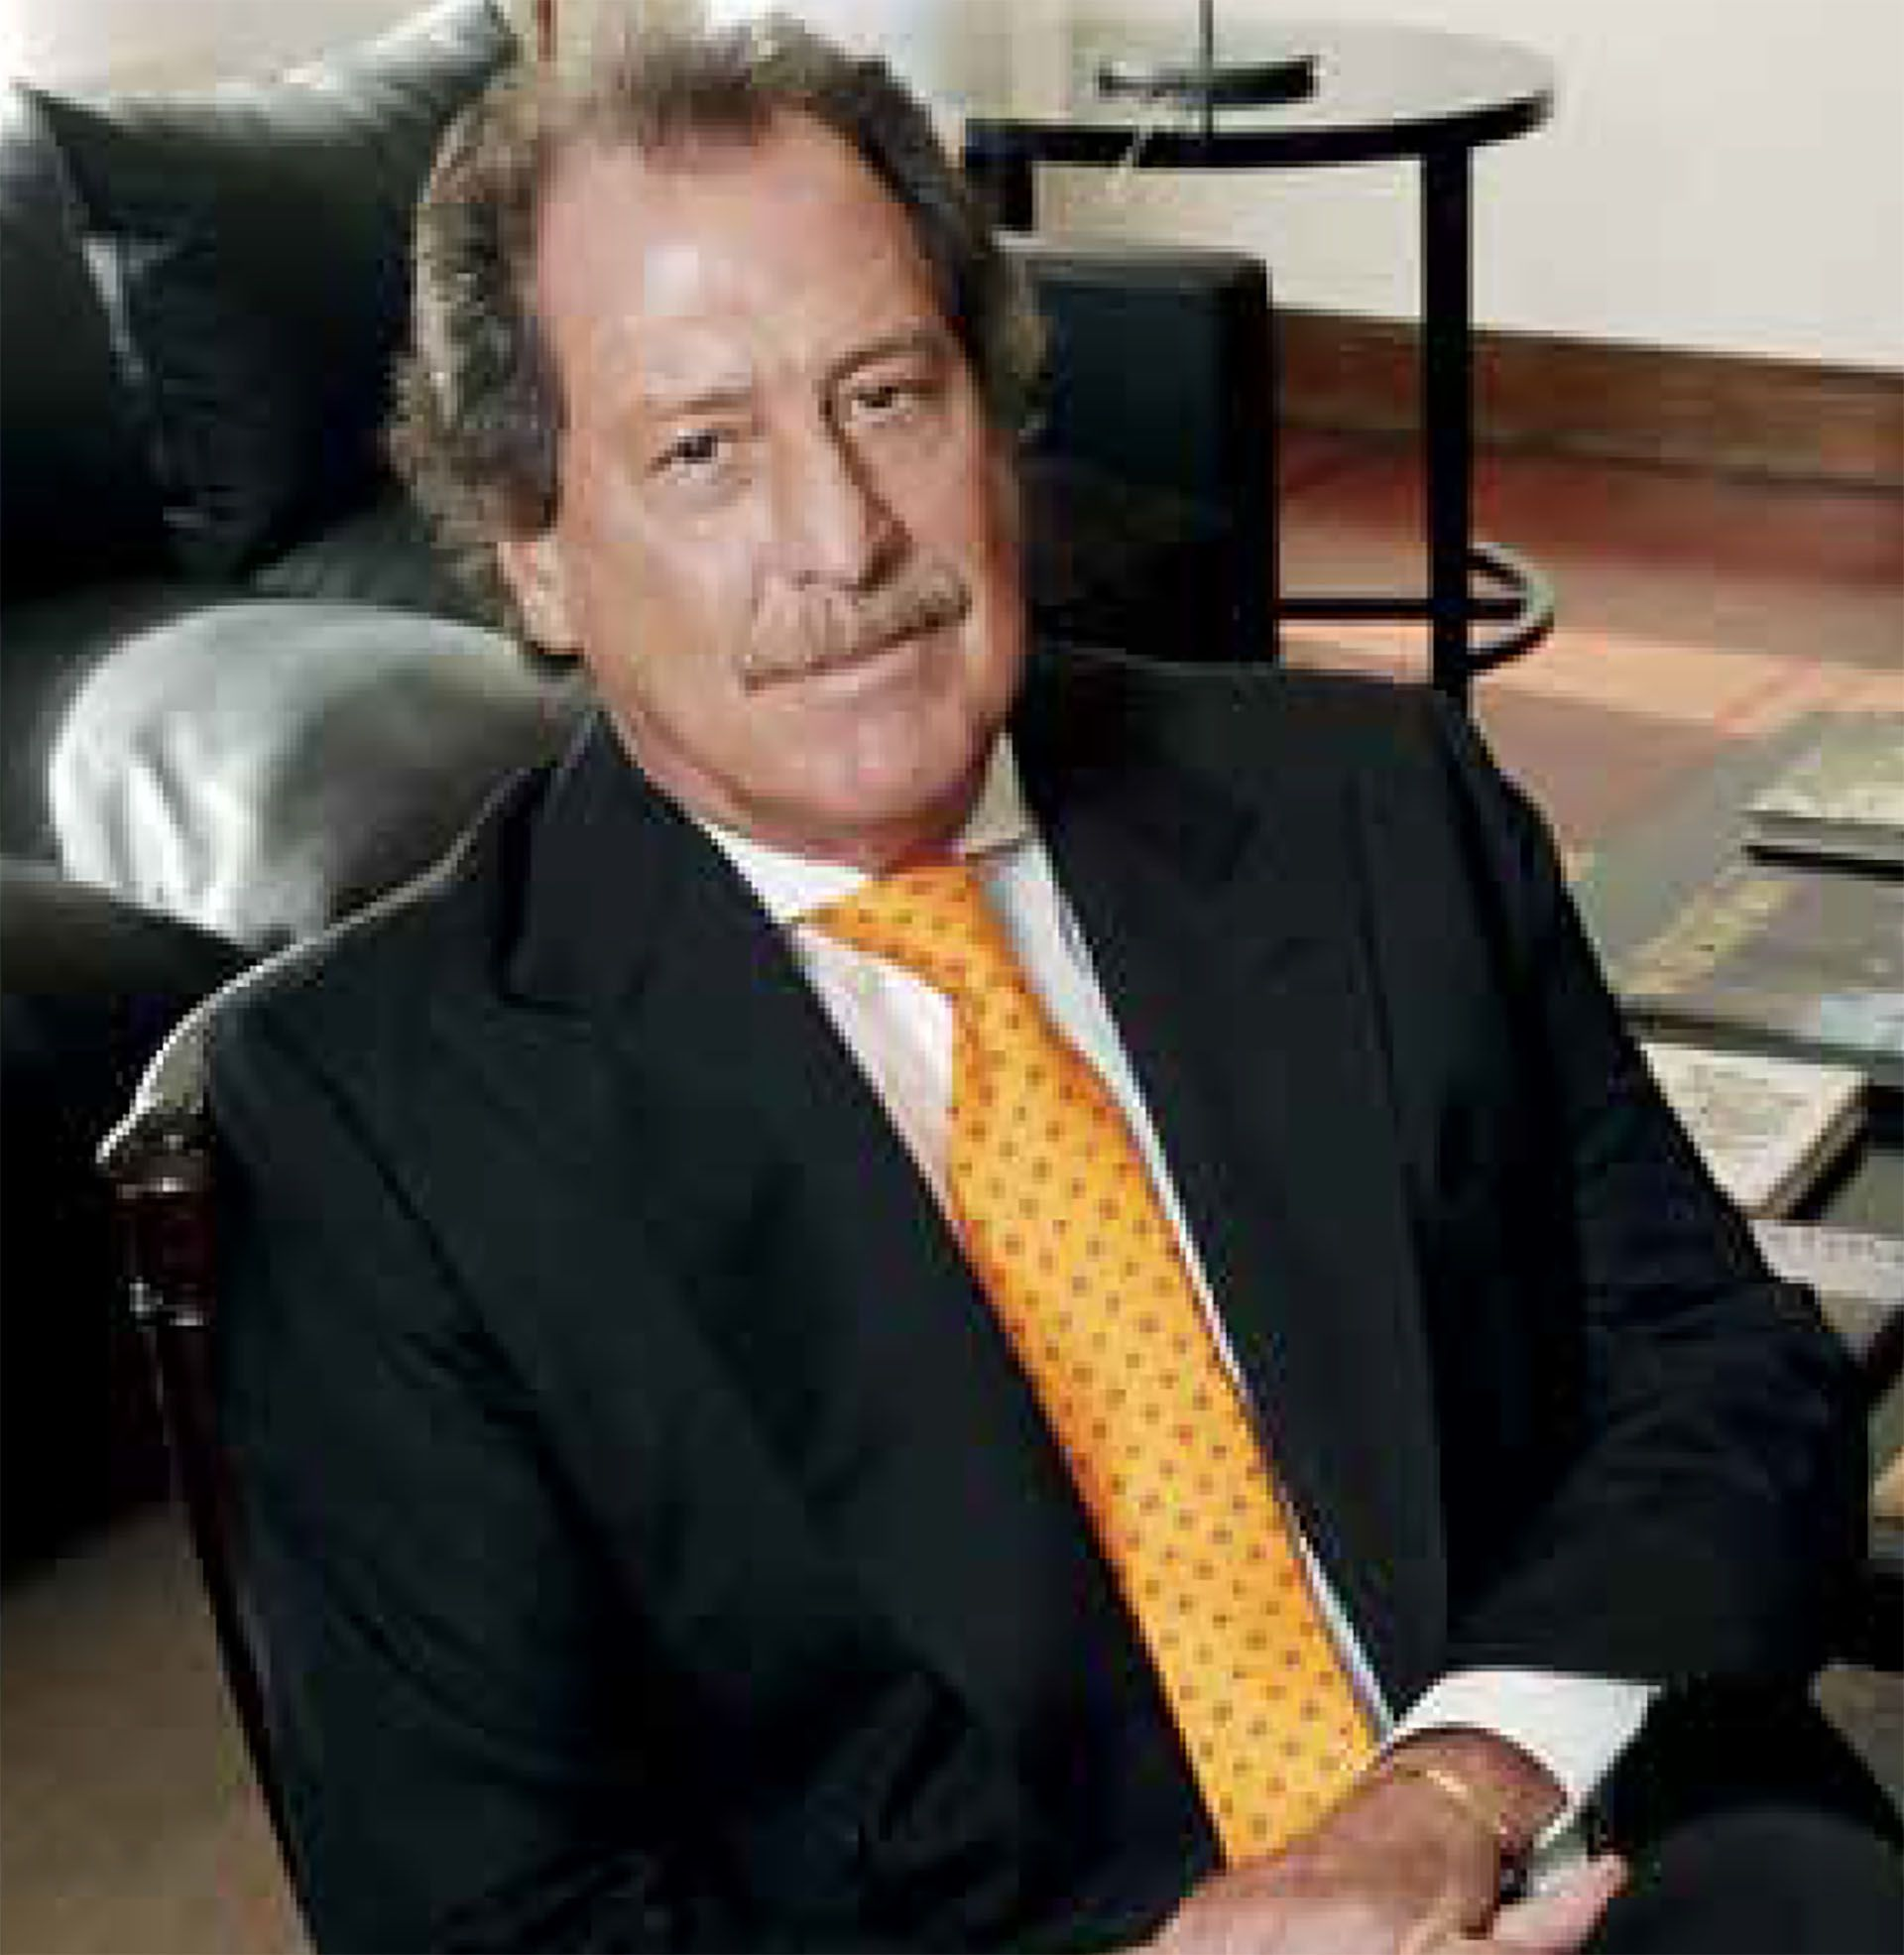 Jorge Horacio Brito was a shareholder in Genneia SA, a leading company in the energy sector (Forbes Magazine)